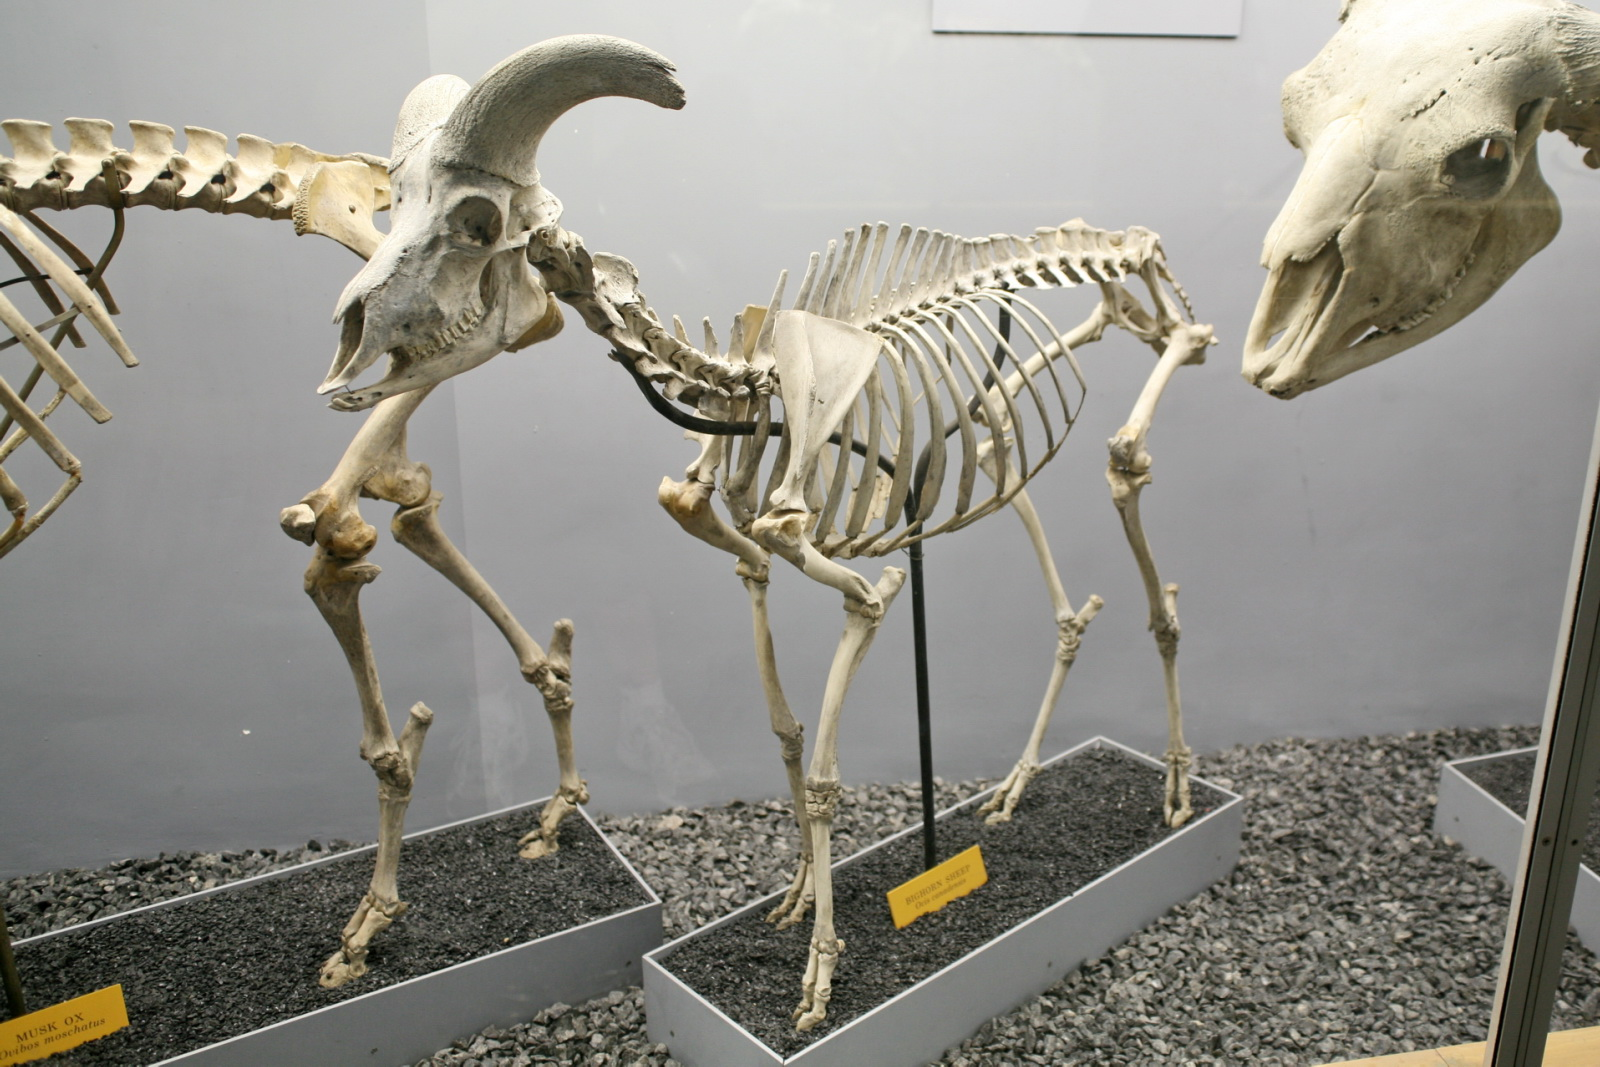 Sheep anatomy skeleton